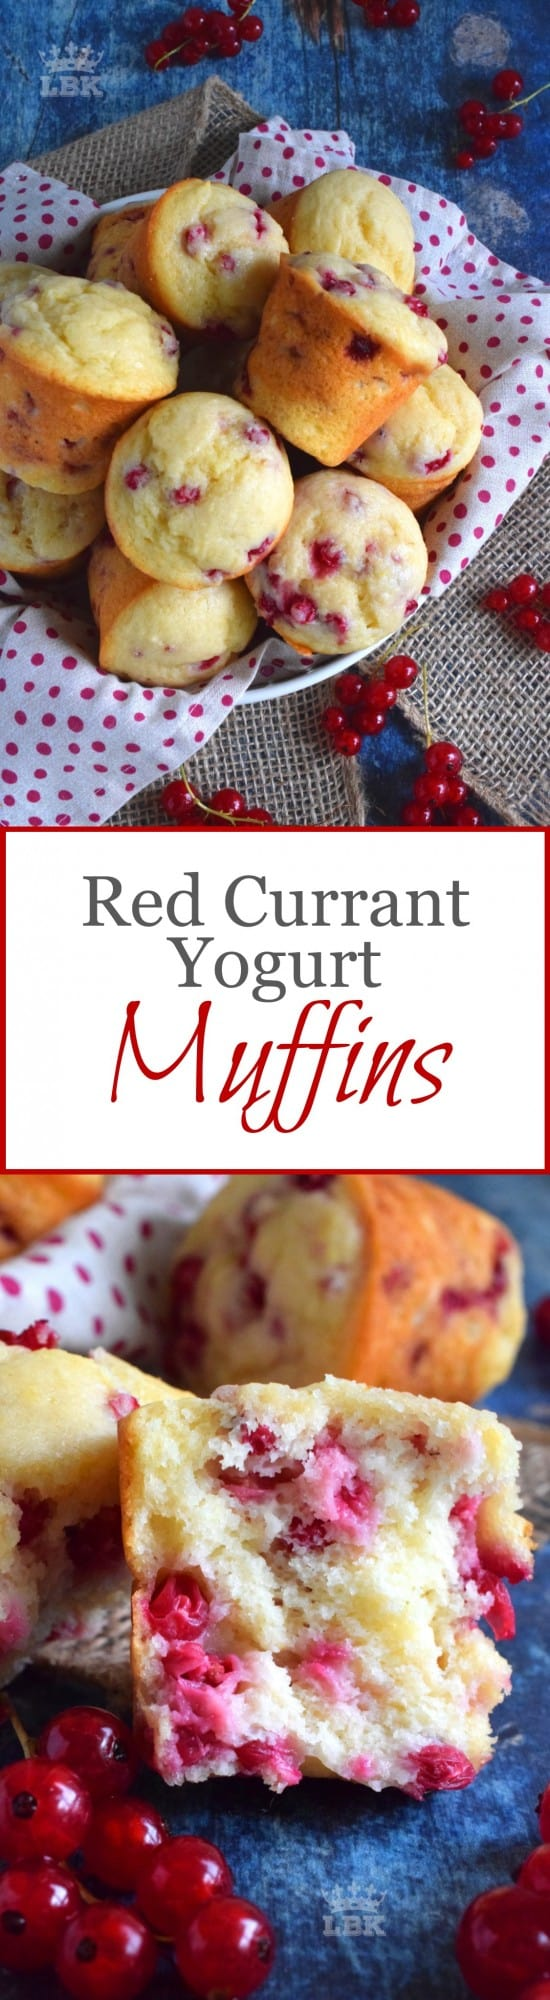 Red Currant Yogurt Muffins